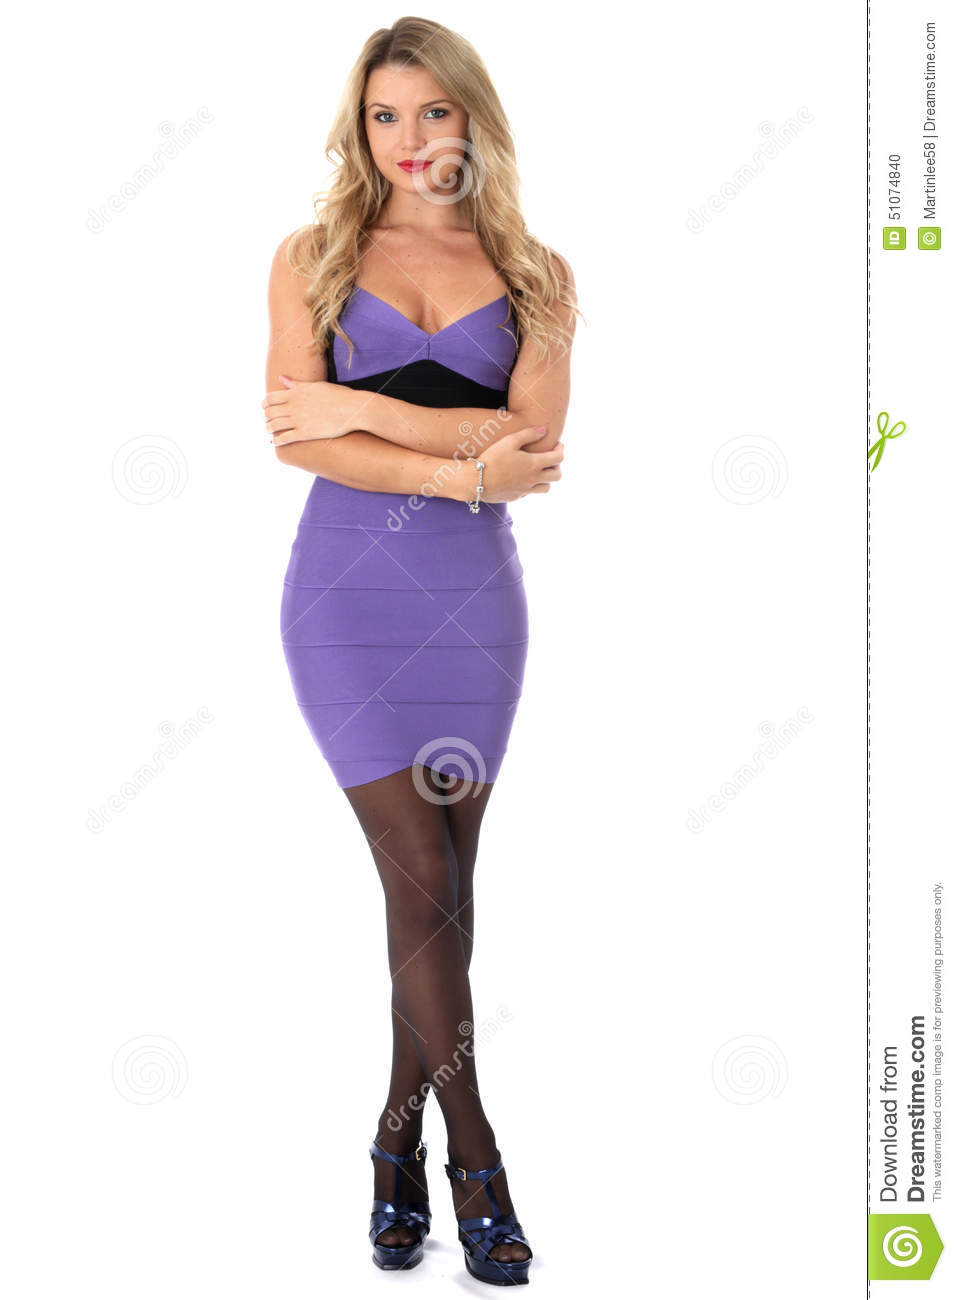 With Arms Wearing Tight Purple Short